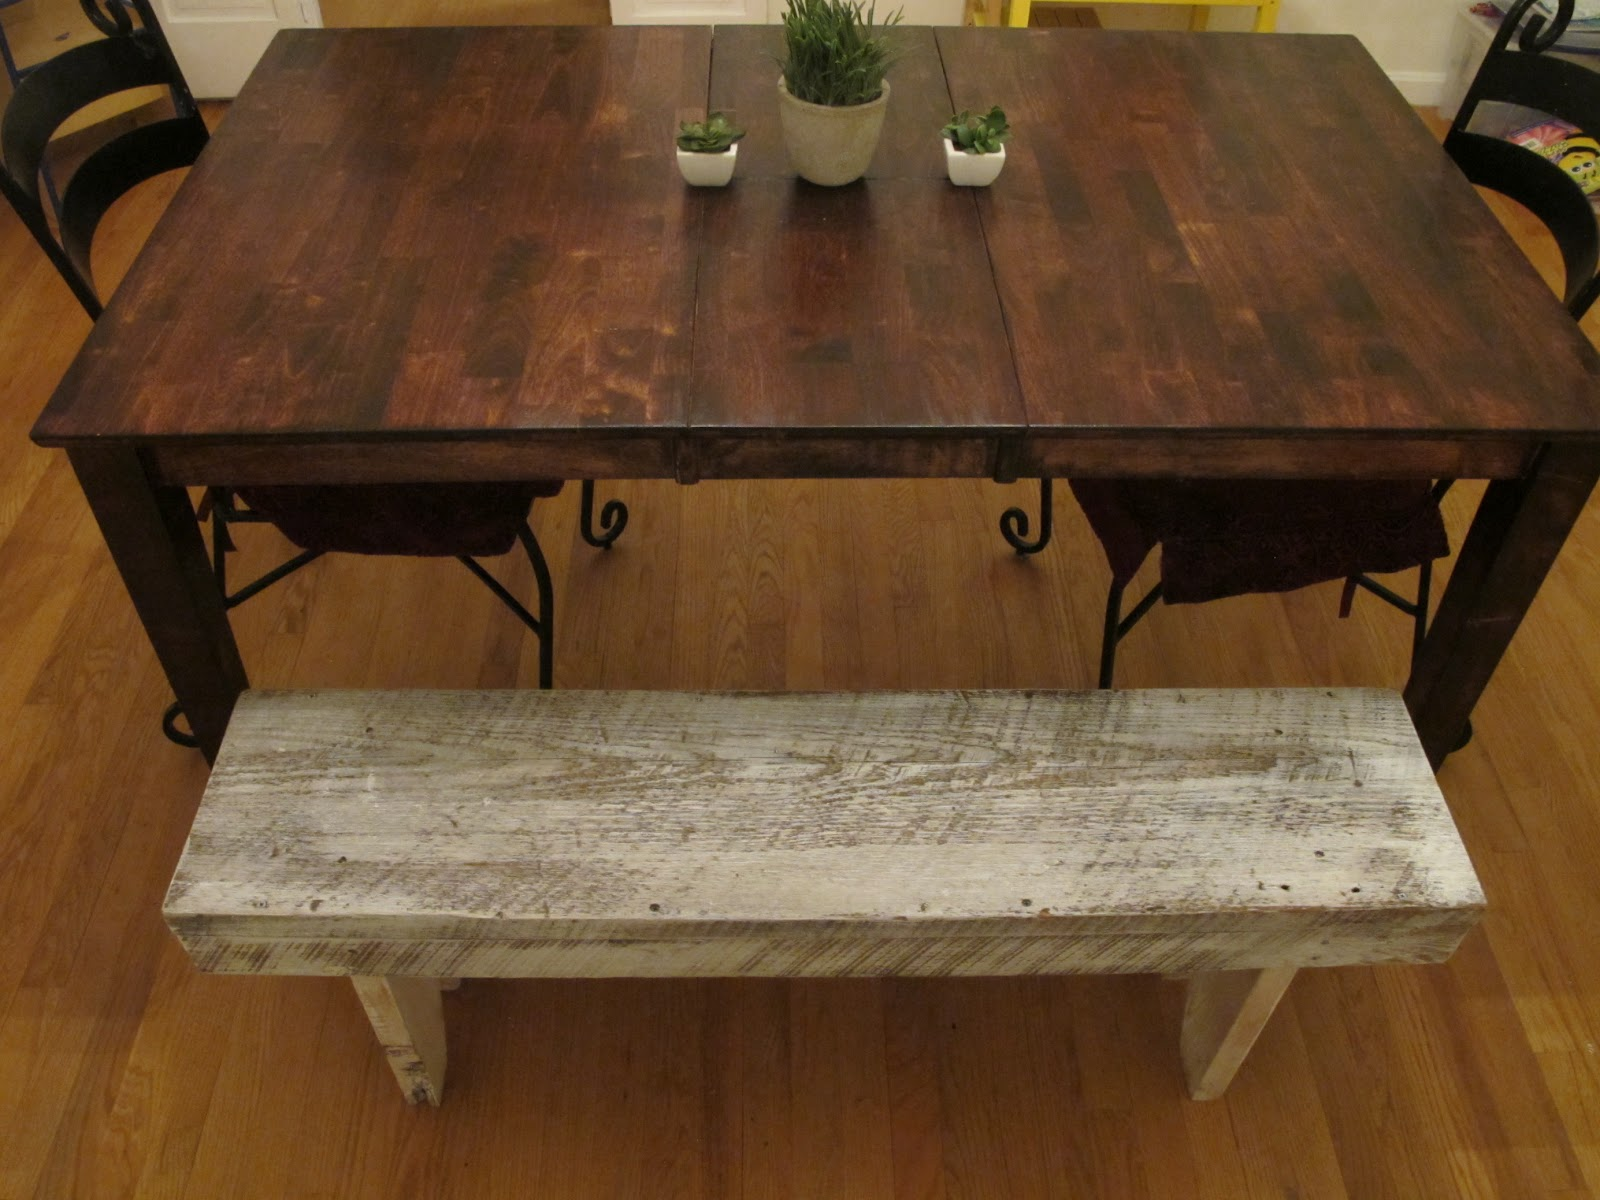 Diy dining table makeover - After